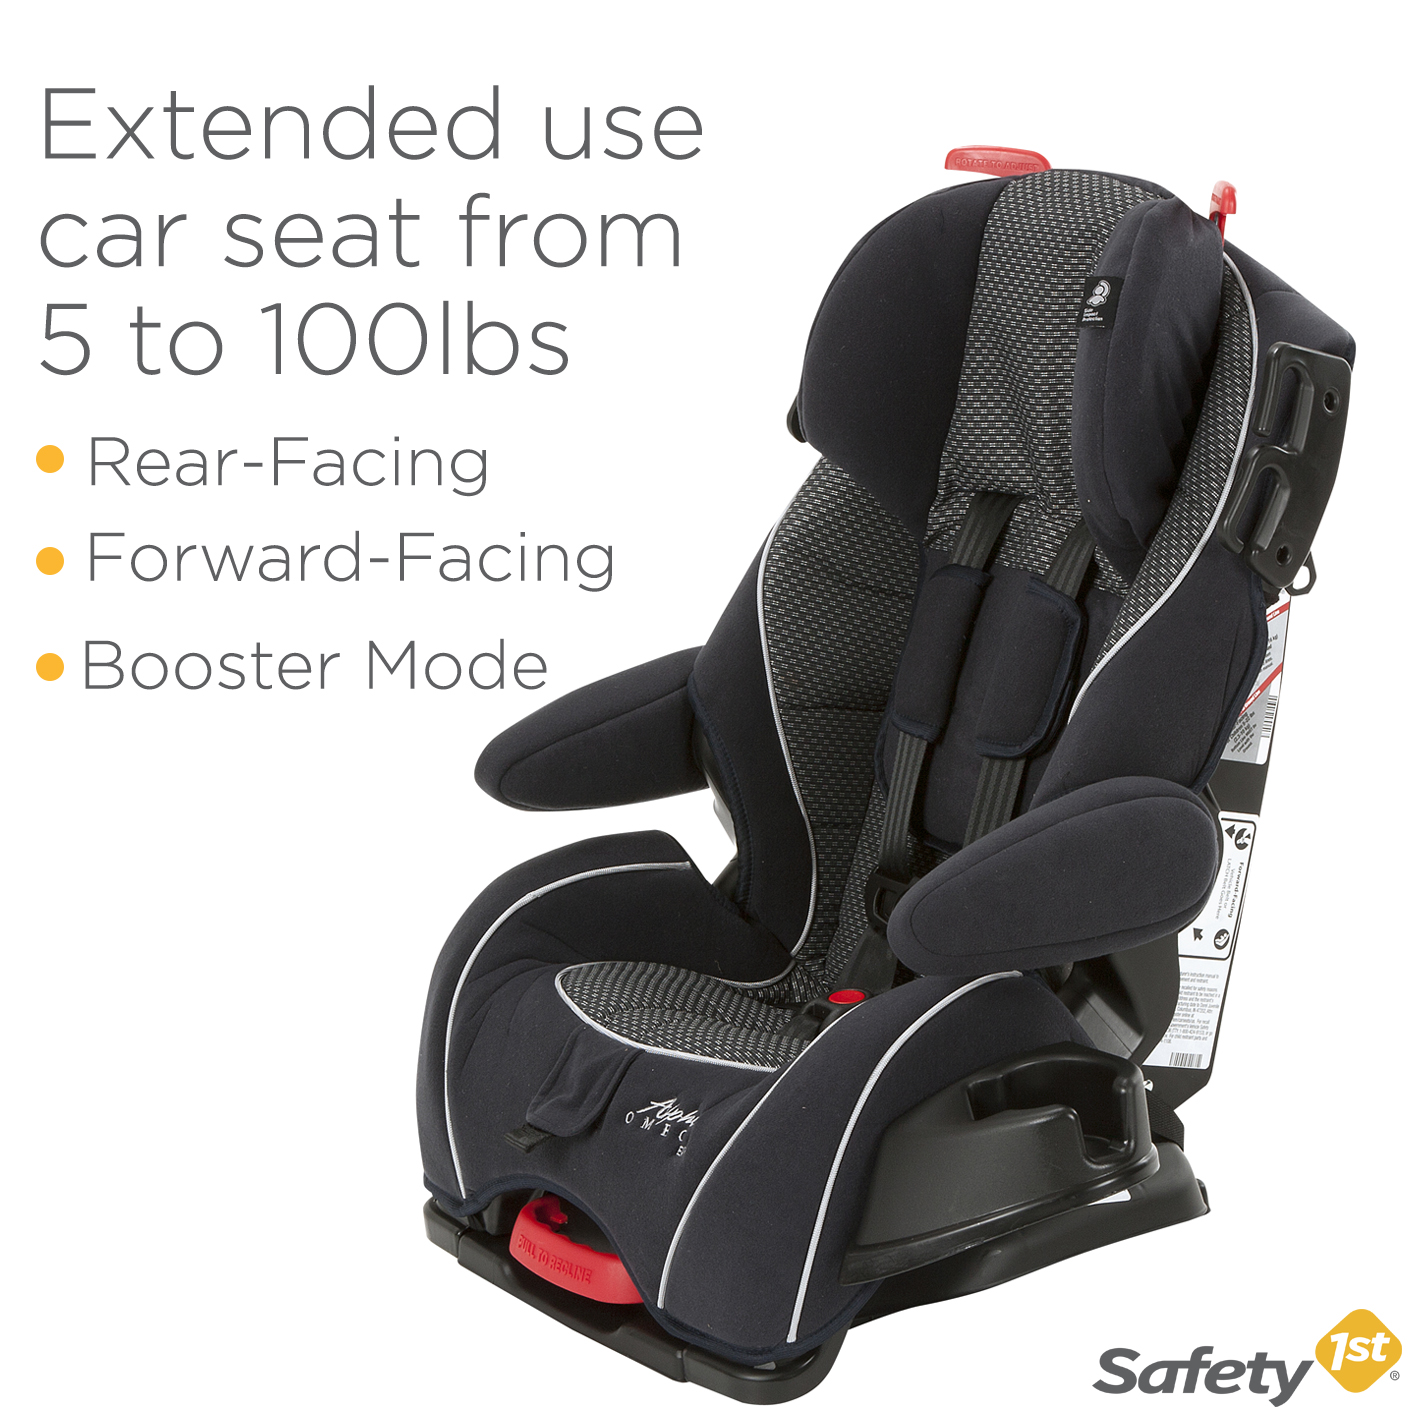 Safety 1st Alpha Omega EliteTM Convertible Car Seat Quartz